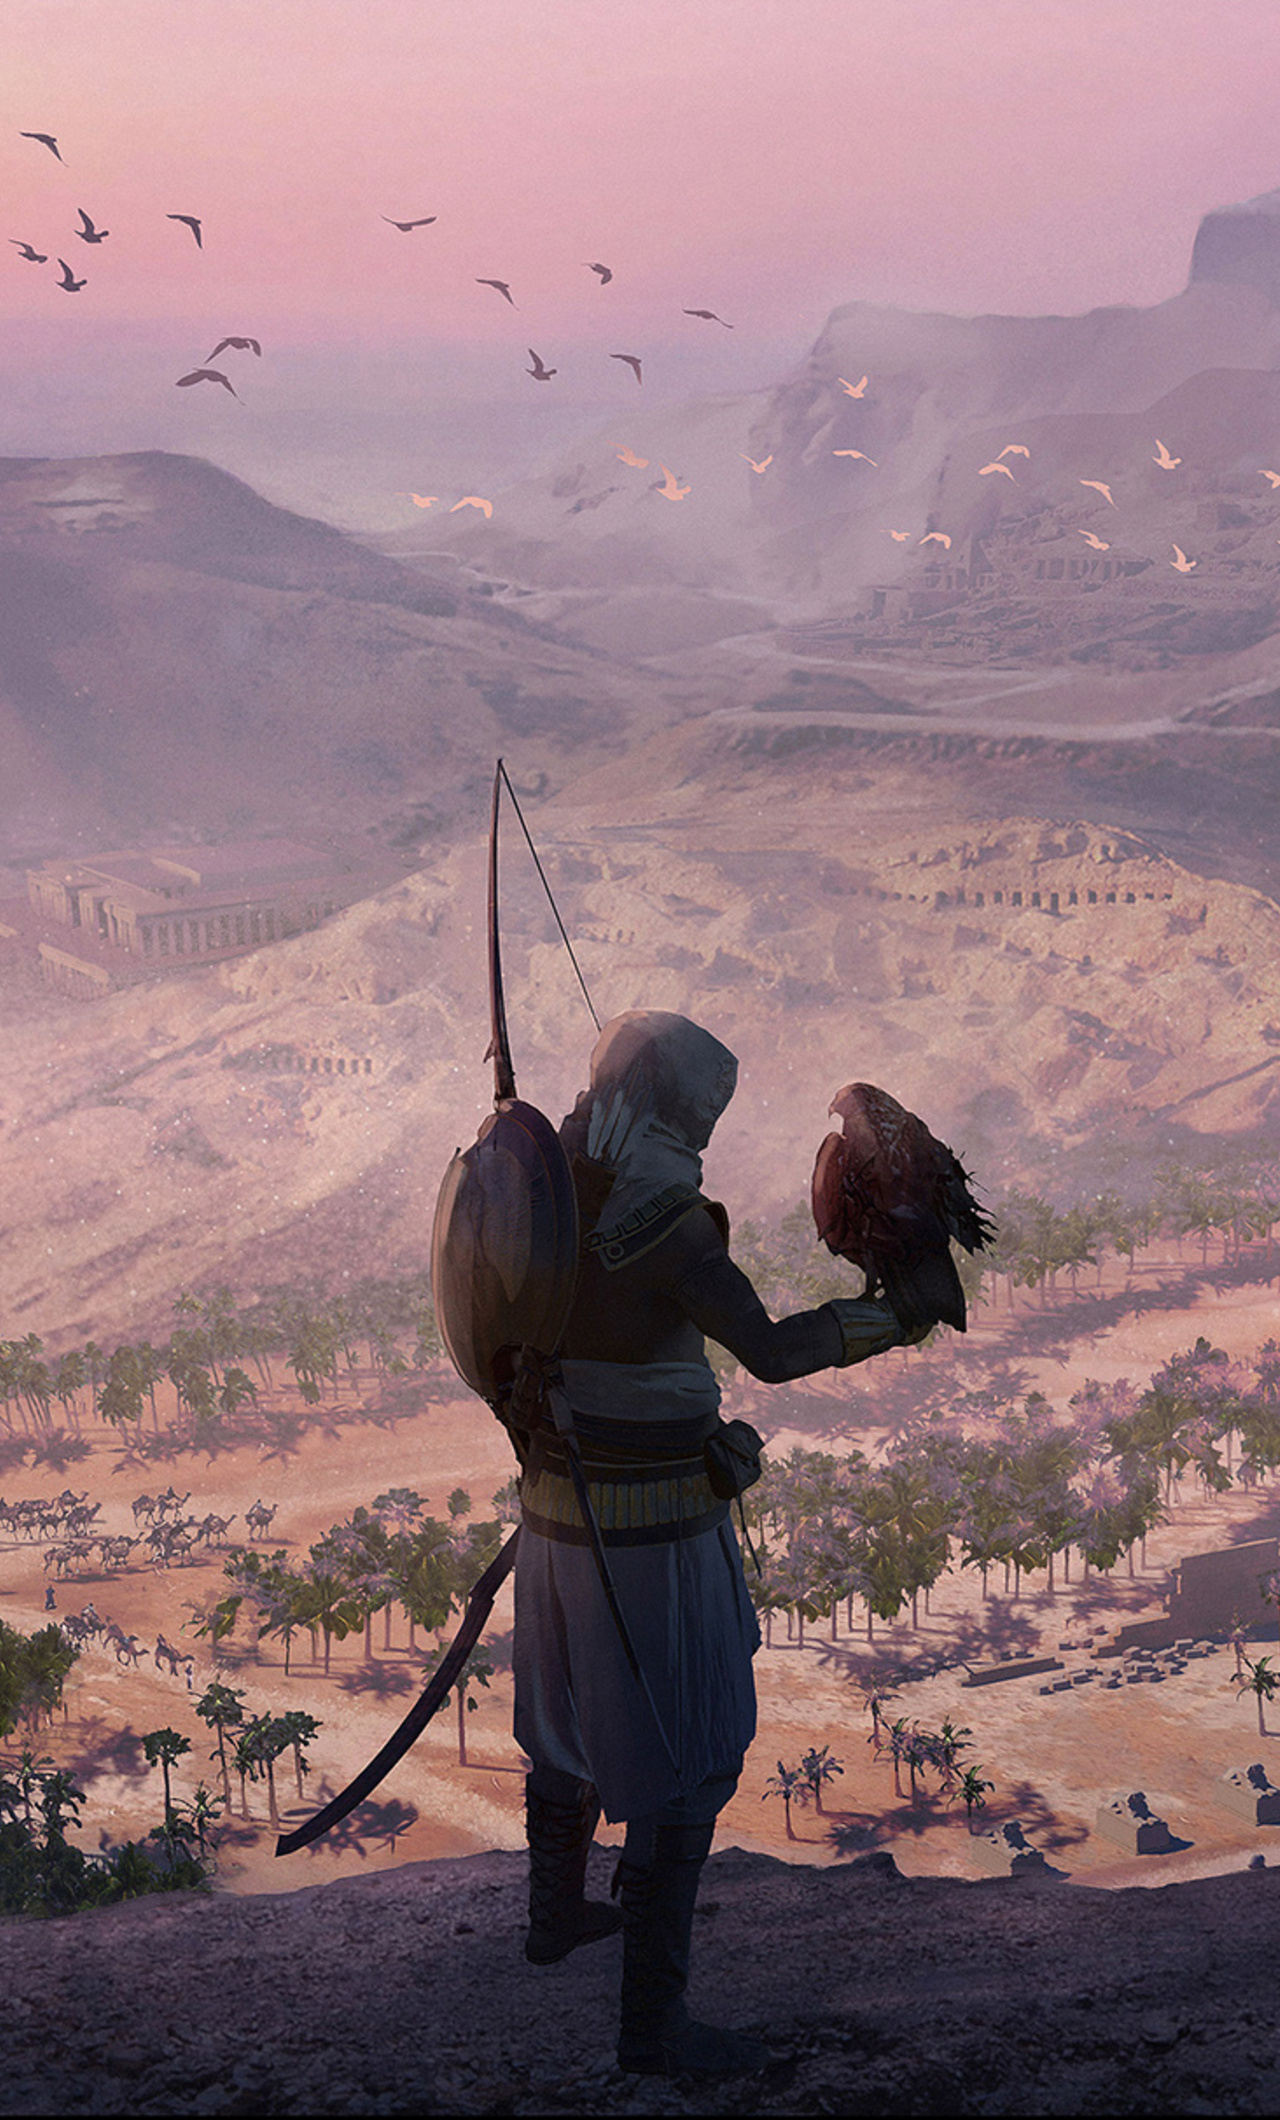 assassins-creed-origins-game-artwork-re.jpg